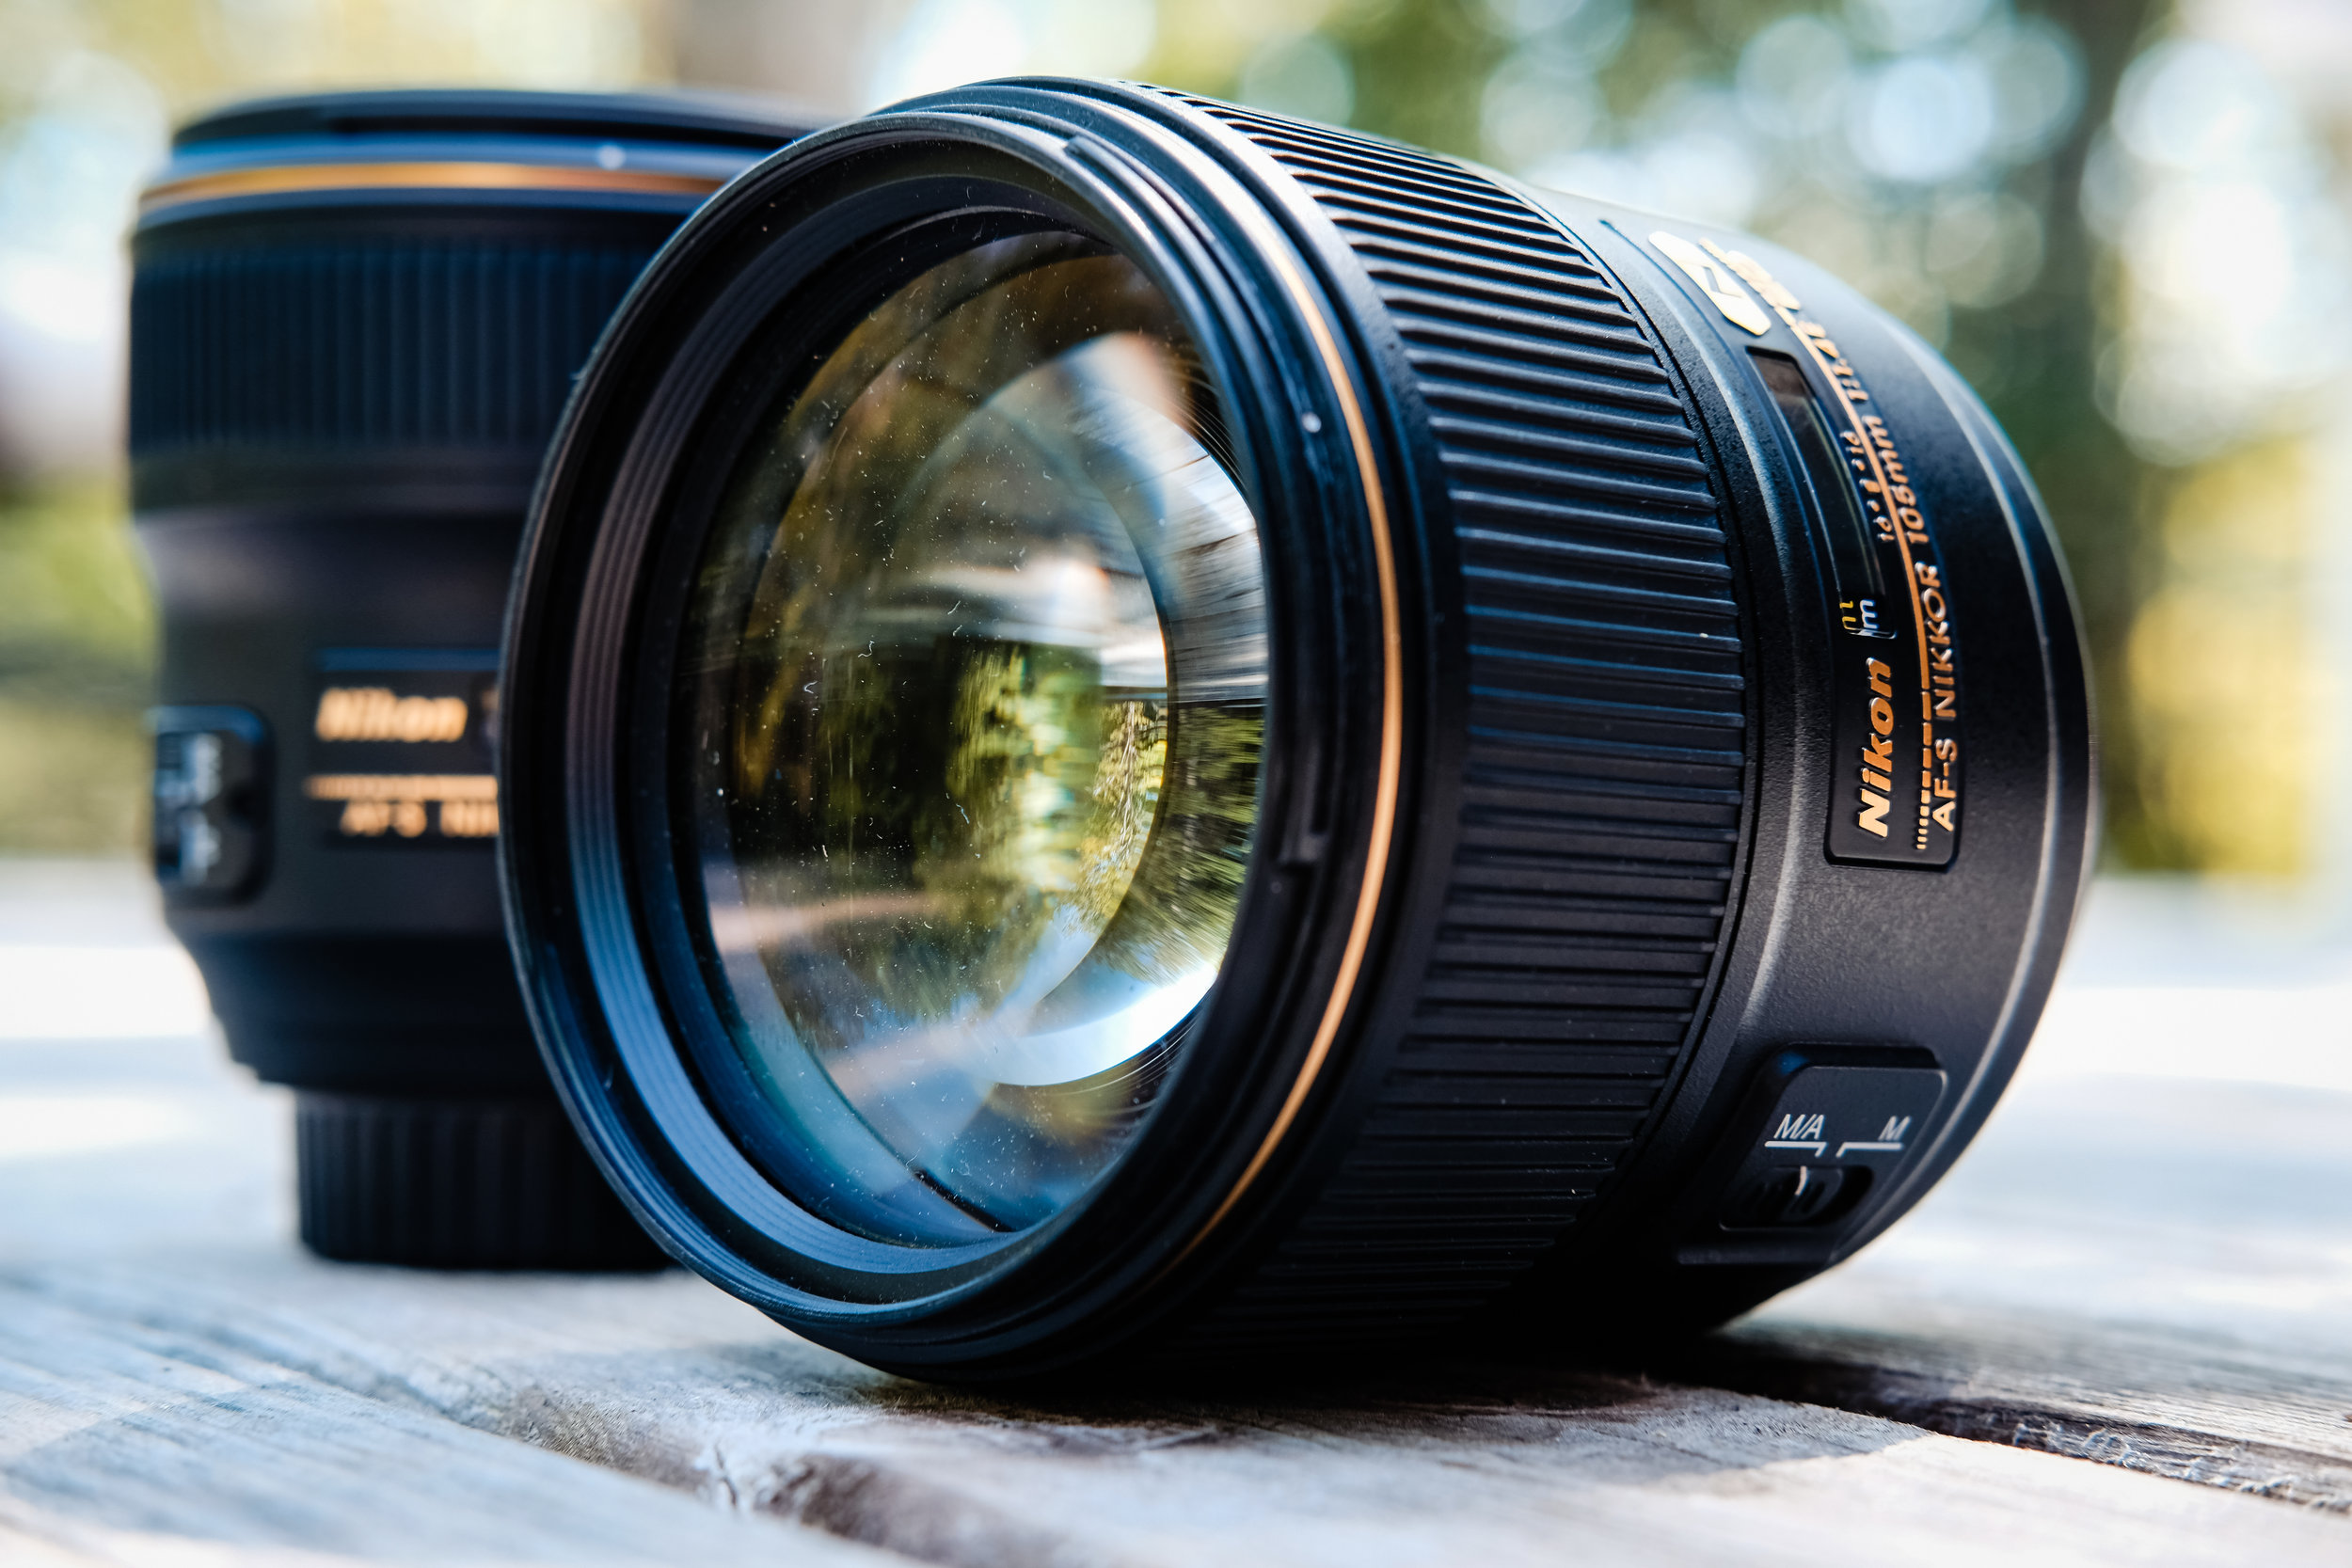 105mm 1.4, excuse the dust!